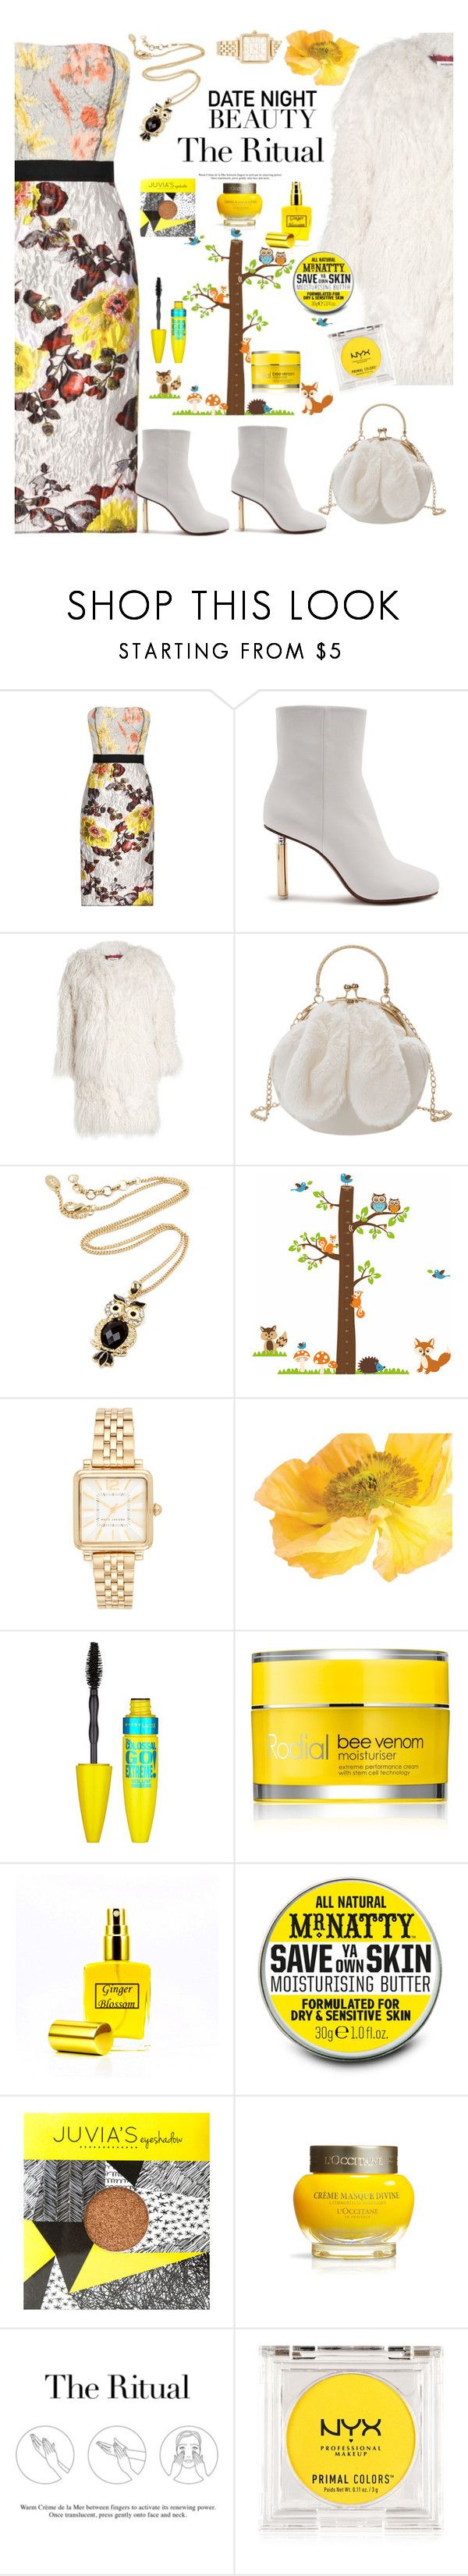 """""""The Rite of Passage"""" by felicitysparks ❤ liked on Polyvore featuring Oscar de la Renta, Vetements, Zadig & Voltaire, Amrita Singh, Marc Jacobs, Maybelline, Rodial, Mr Natty, SkinCare and La Mer"""